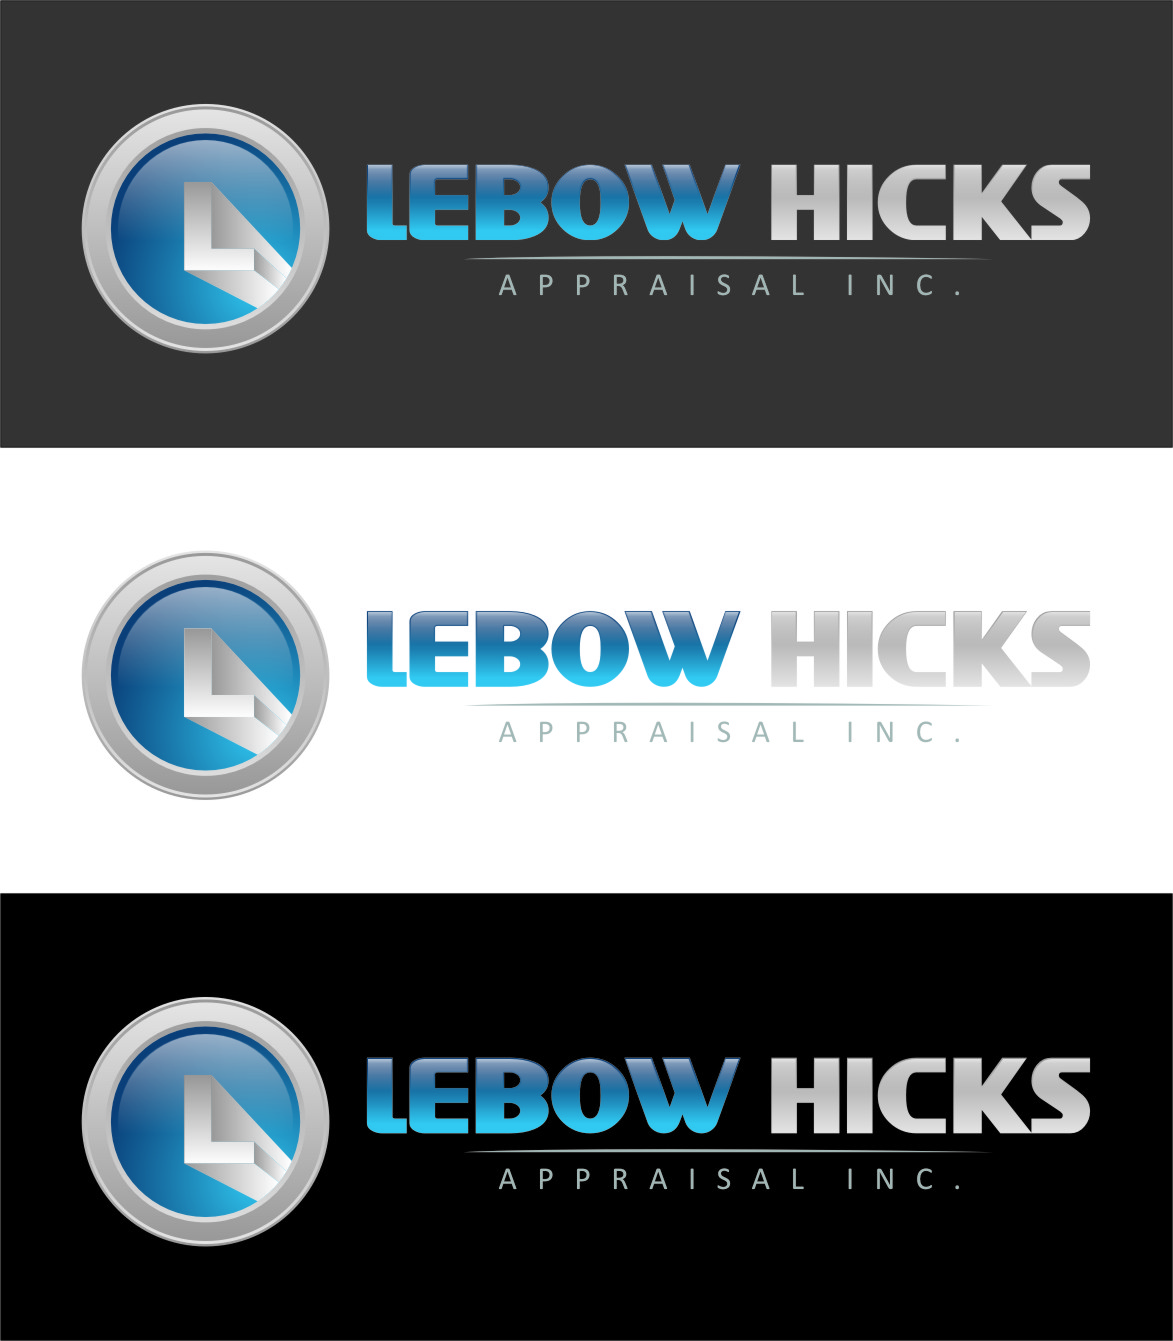 Logo Design by Ngepet_art - Entry No. 55 in the Logo Design Contest Fun Logo Design for Lebow, Hicks Appraisal Inc..